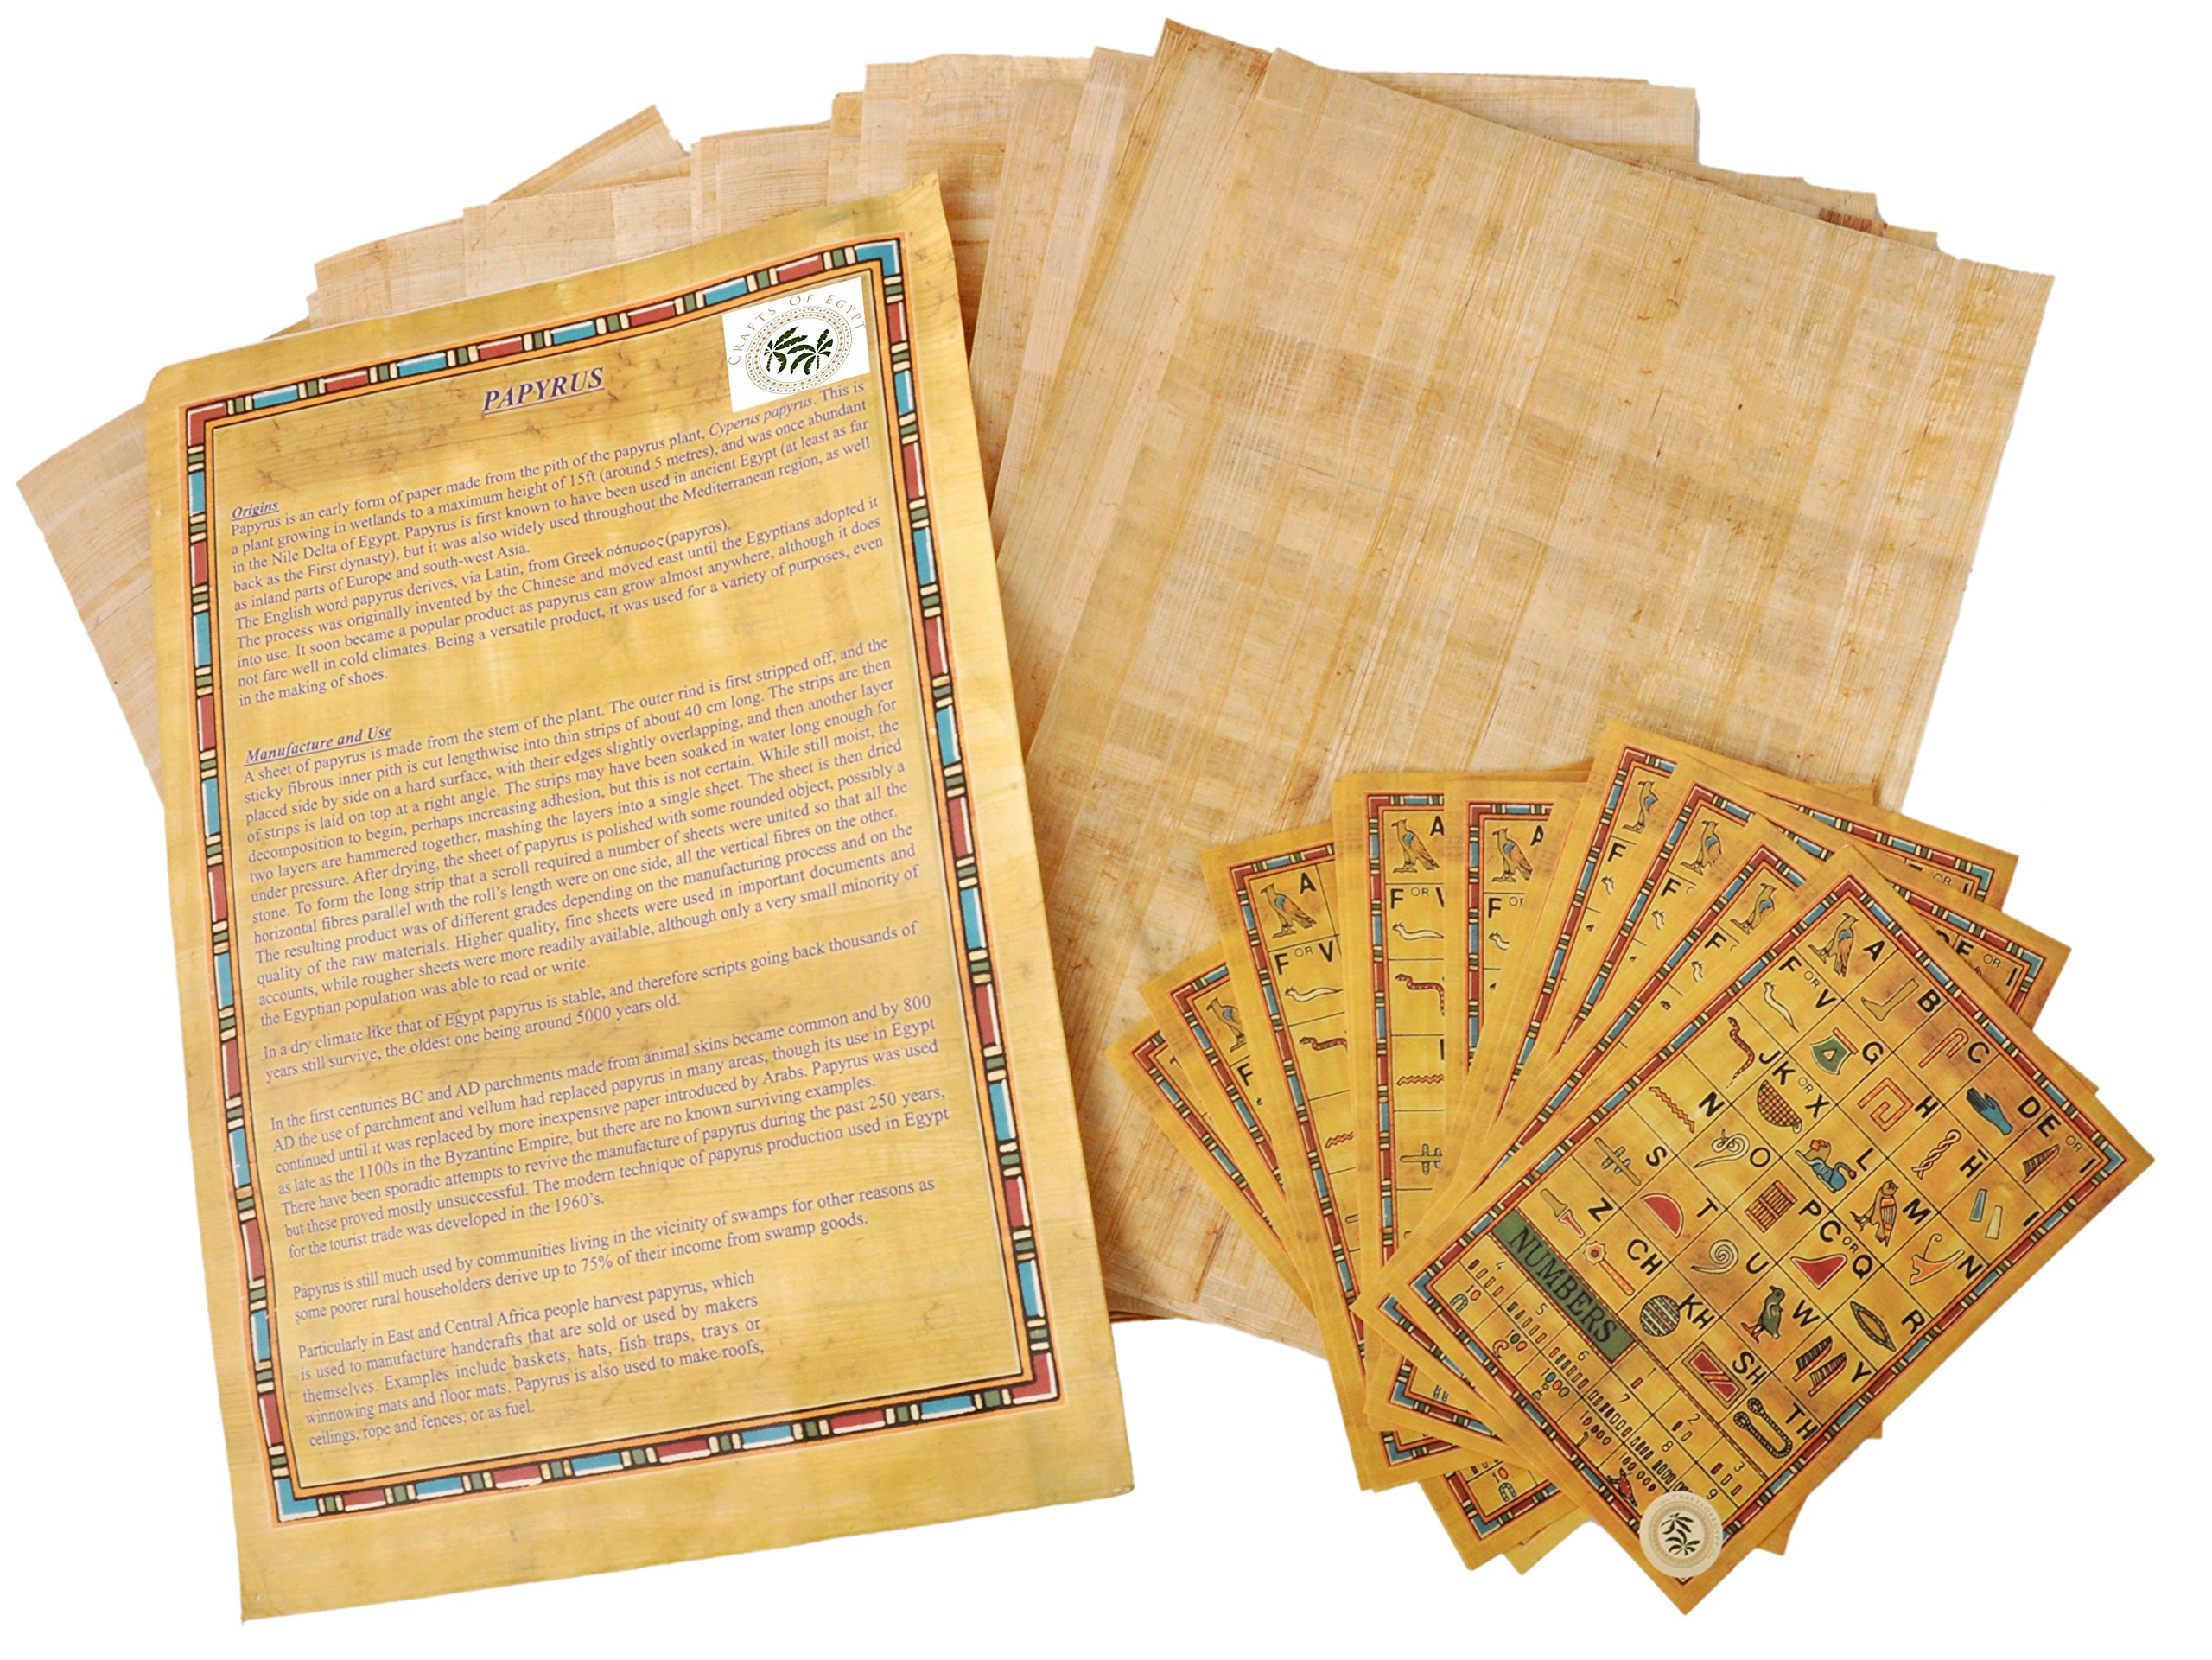 Egyptian Papyrus blank paper set of 10 Sheets for Art Projects scrapbooking album refill scrolls and teaching ancient hieroglyphic history 8x12in (20x30cm)